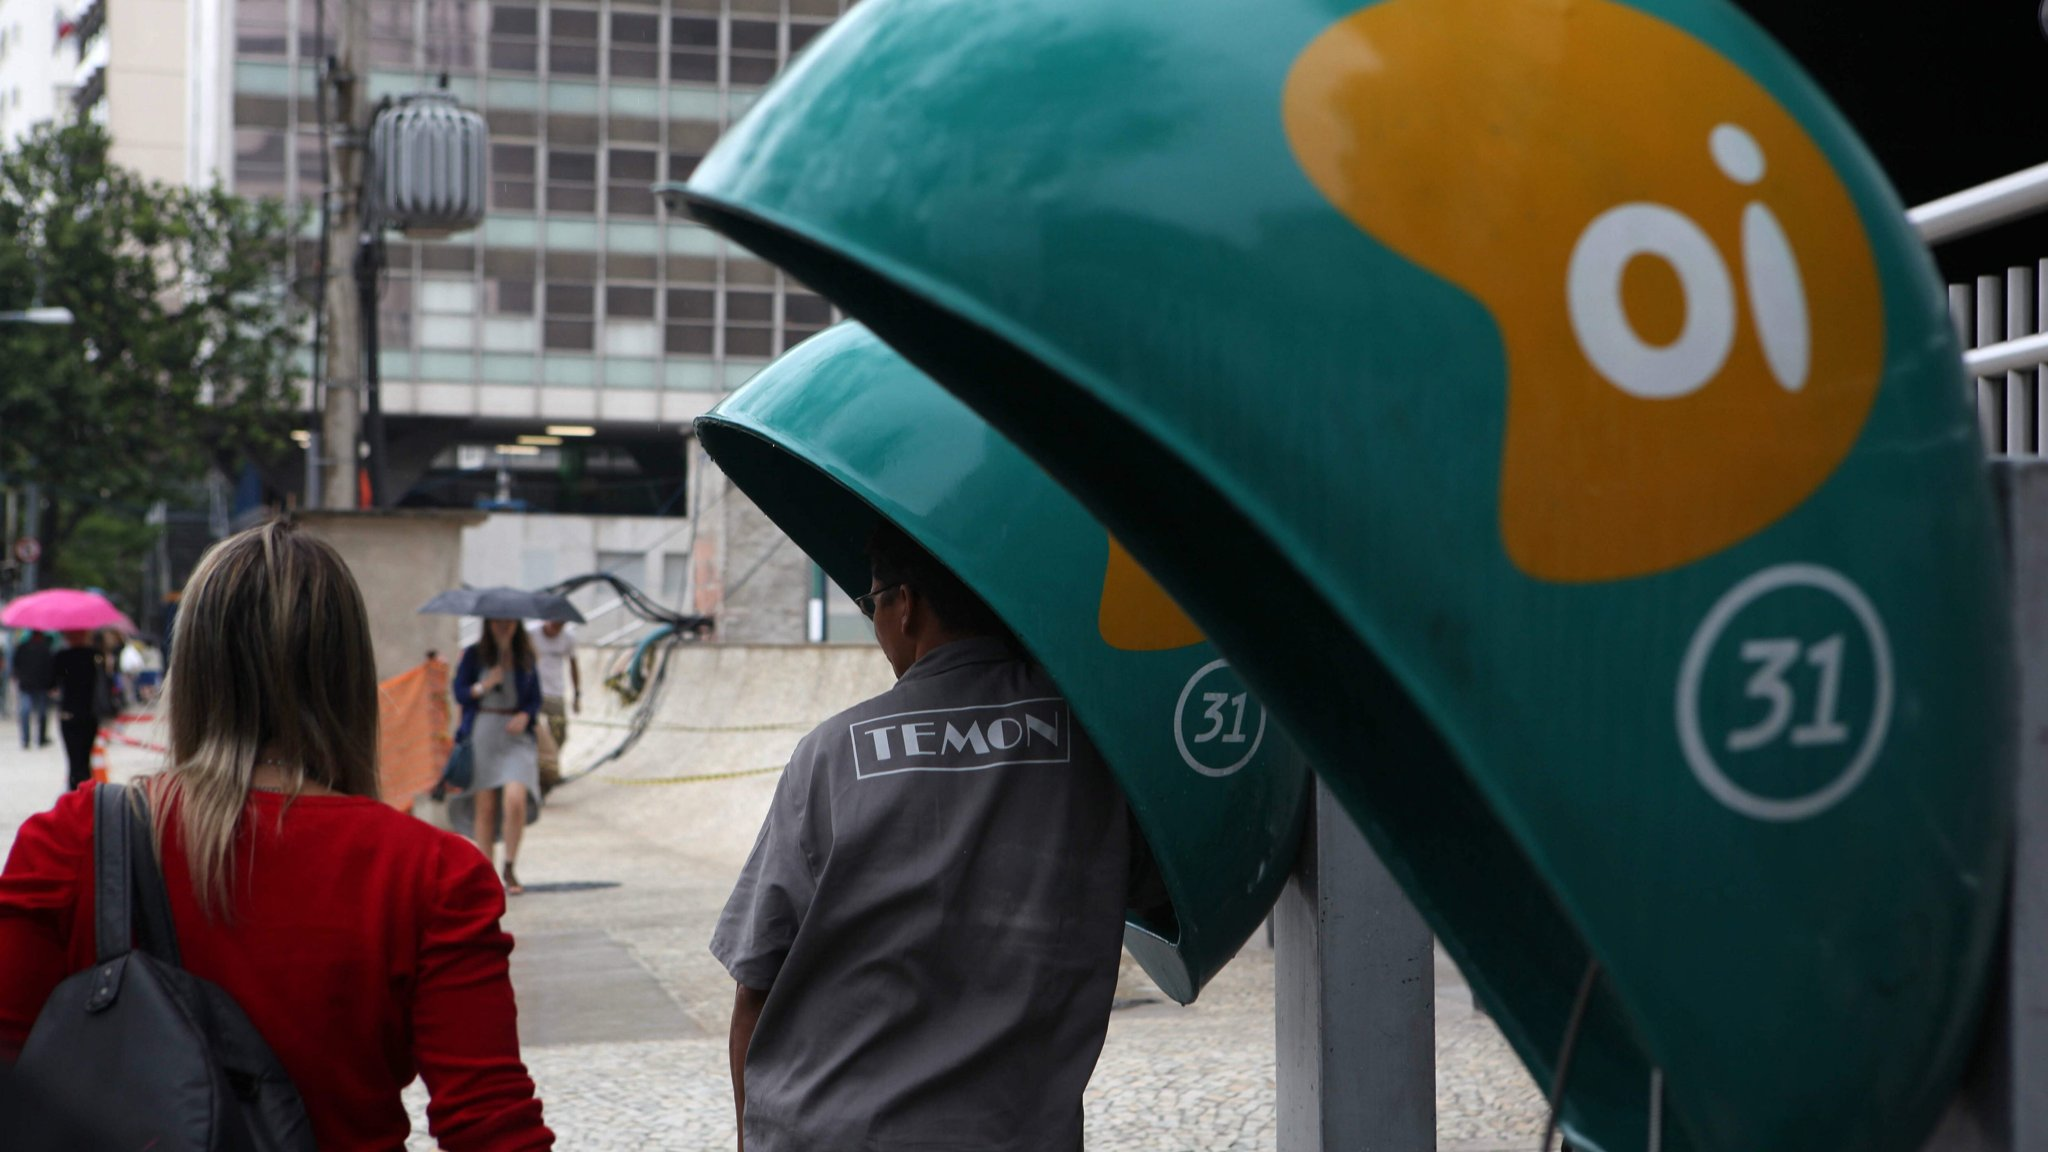 Oi saga prompts Brazil to rethink bankruptcy law